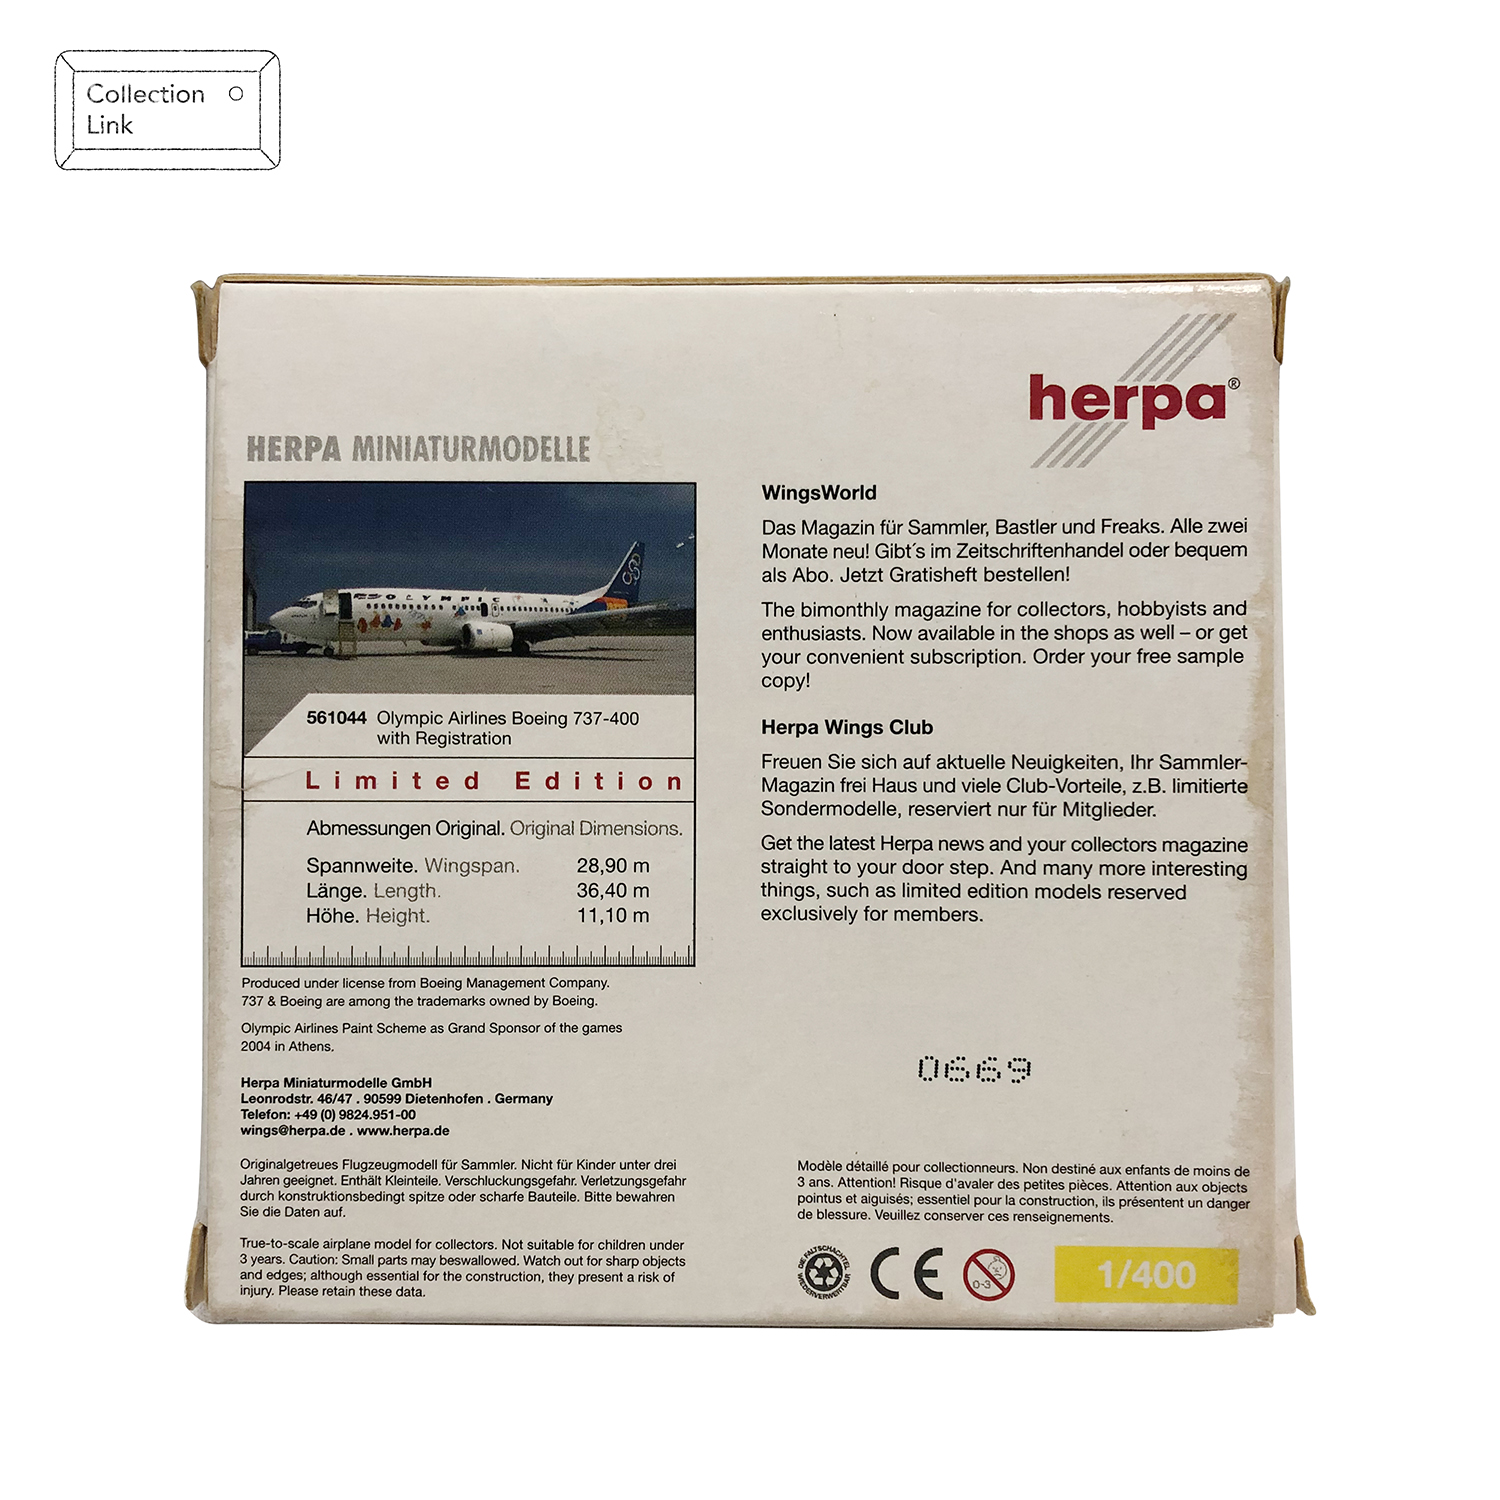 Herpa 1:400 Olympic Airlines Boeing 737-400 #561044 飛機模型【Tonbook蜻蜓書店】